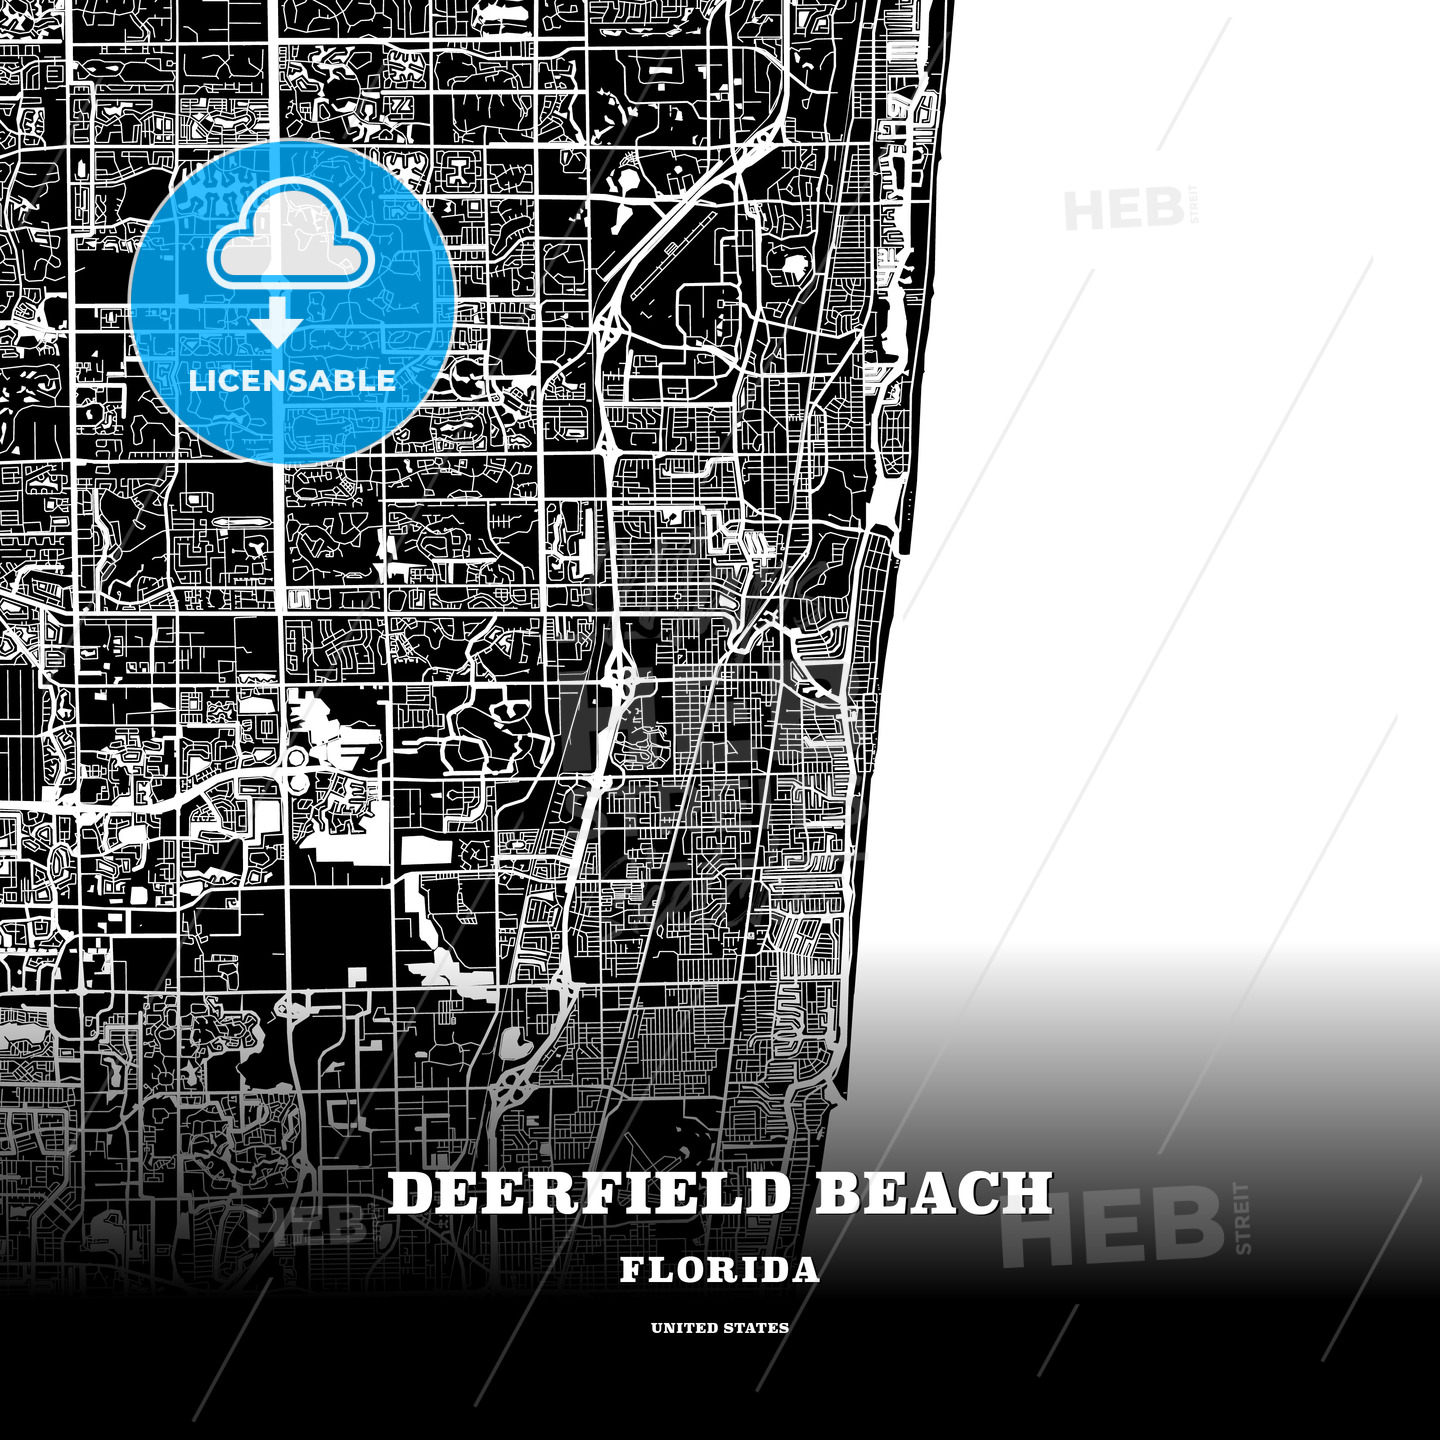 Black map poster template of Deerfield Beach, Florida, USA on sterling florida map, st charles florida map, decatur florida map, deep creek florida map, huntington florida map, rosemont florida map, barrington florida map, kissimmee florida map, troy florida map, stonecrest florida map, long lake florida map, rockland florida map, lincoln florida map, countryside florida map, sea breeze florida map, janesville florida map, briarwood florida map, bennington florida map, boca raton florida map, haverhill florida map,